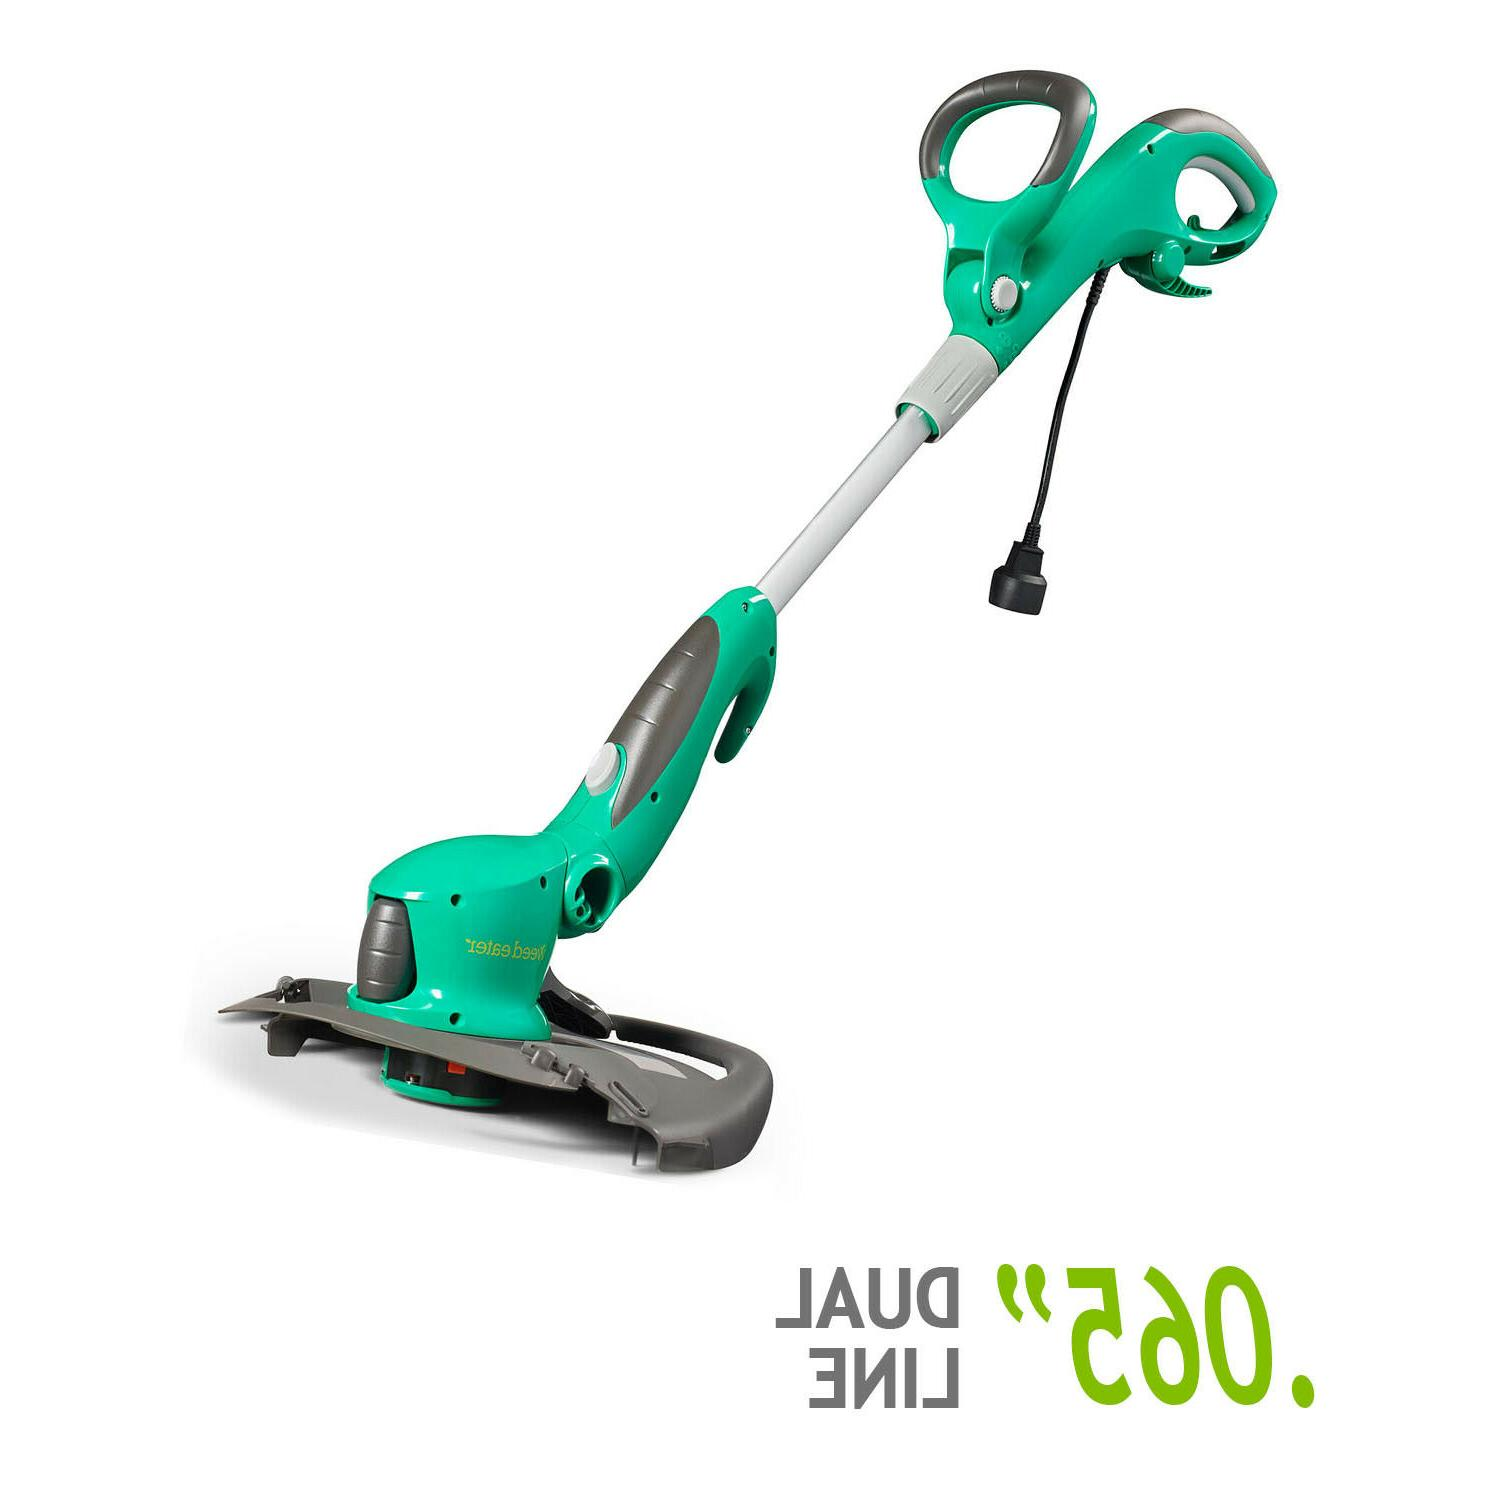 Weed Eater 14 in. Electric Corded 4.2 Amp String Trimmer Out